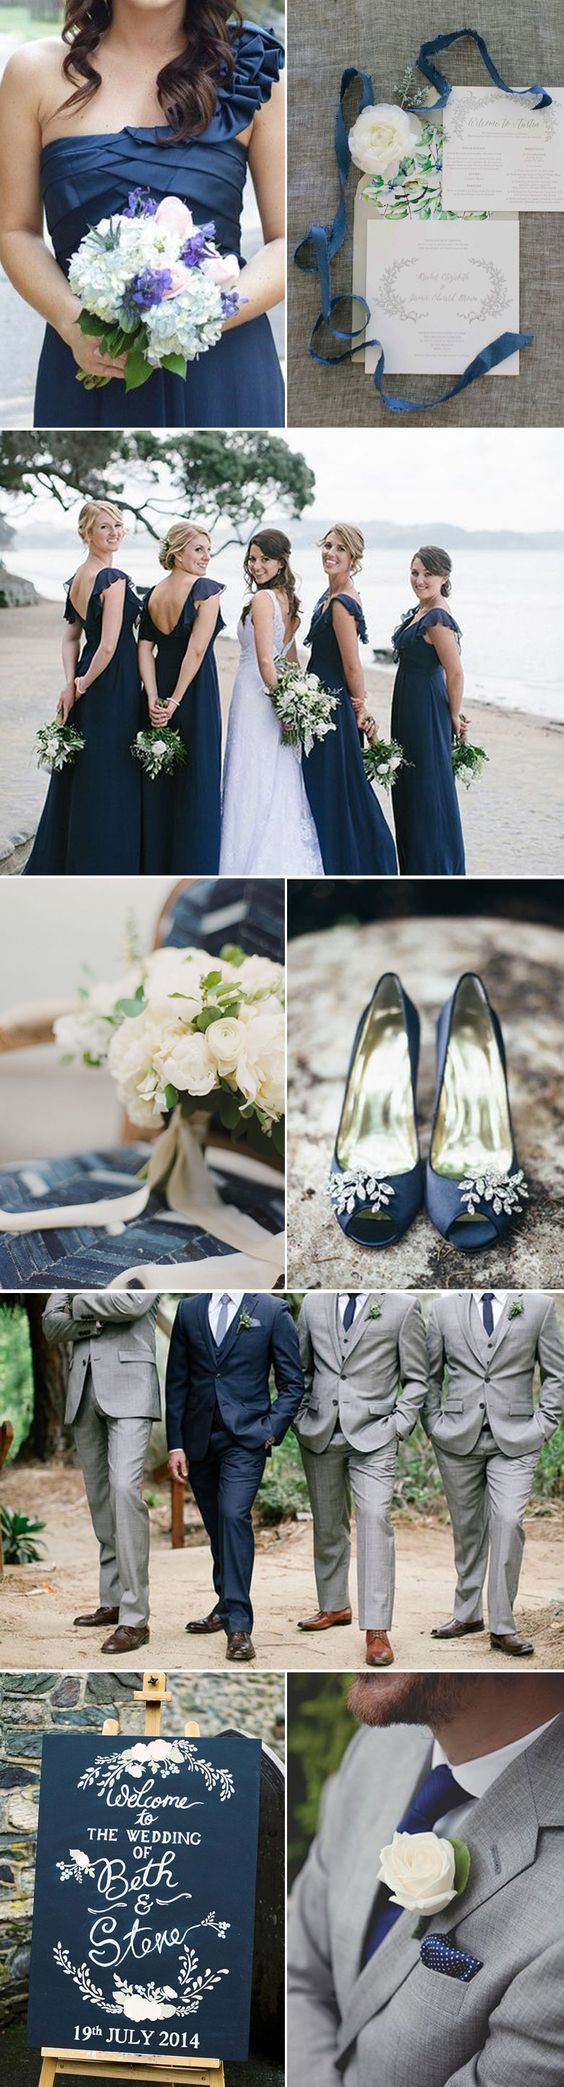 Royal blue wedding inspiration